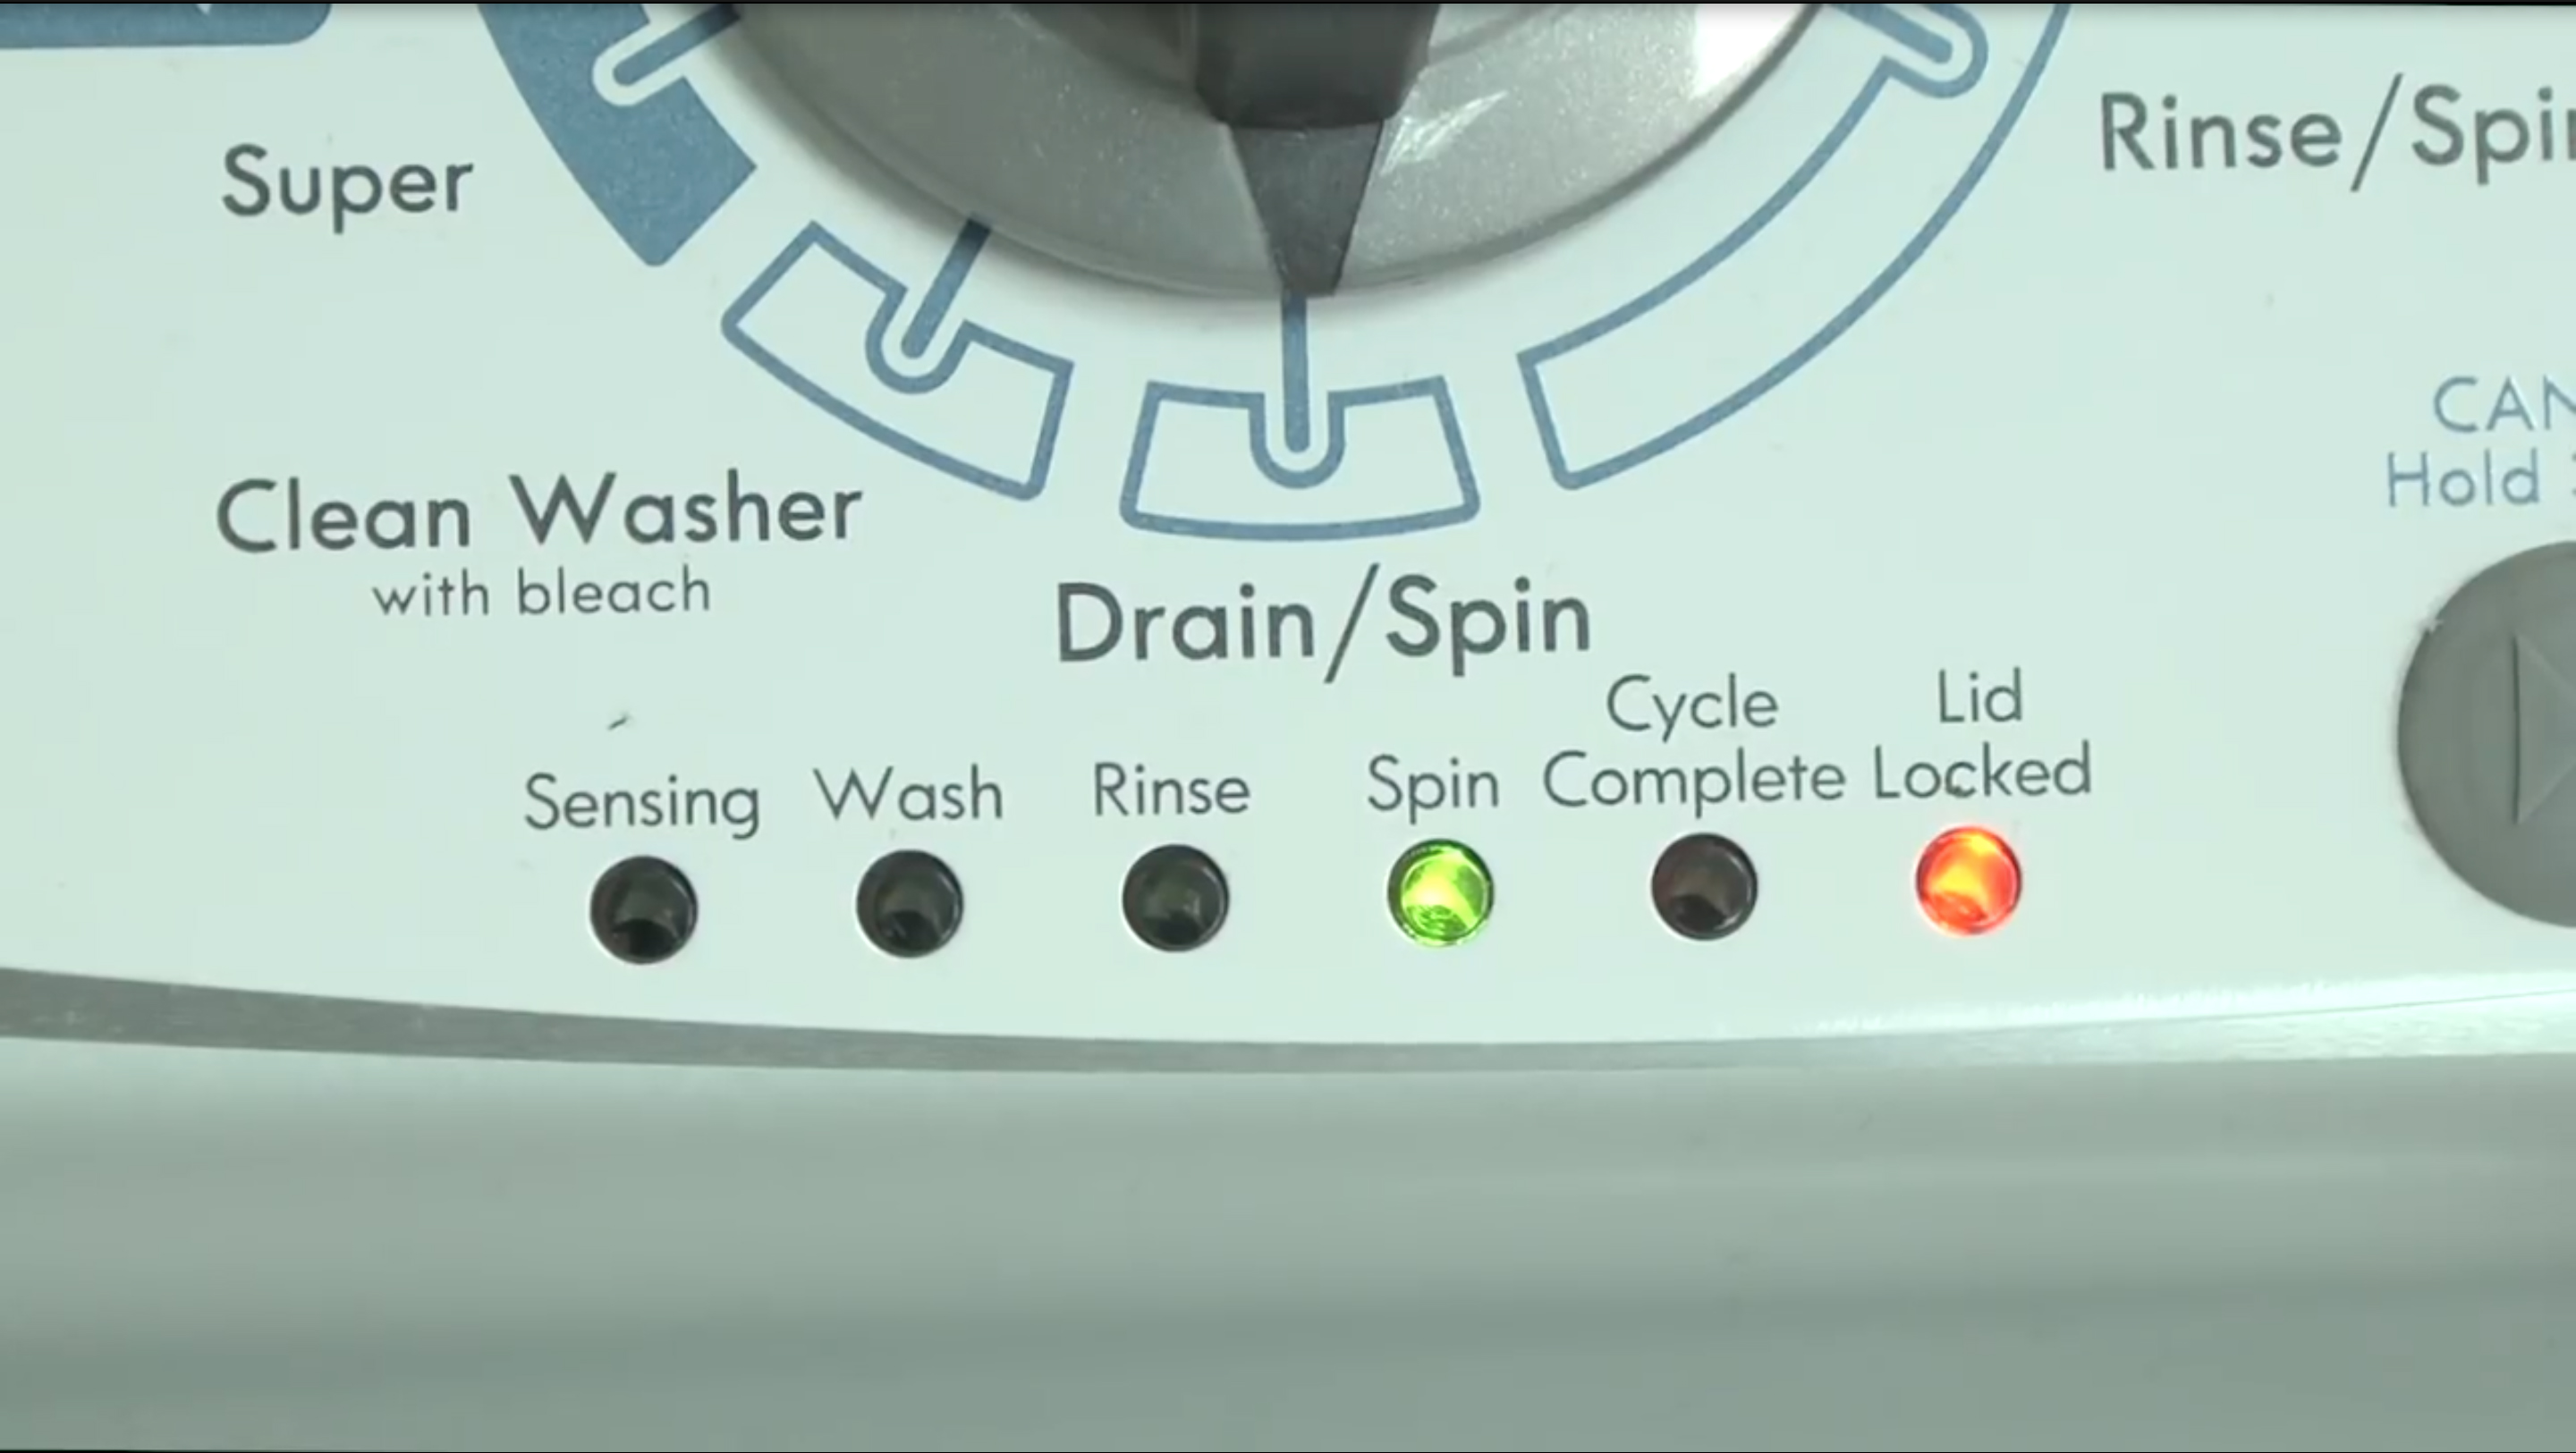 How to replace the motor coupler on a top-load washer | Repair guide